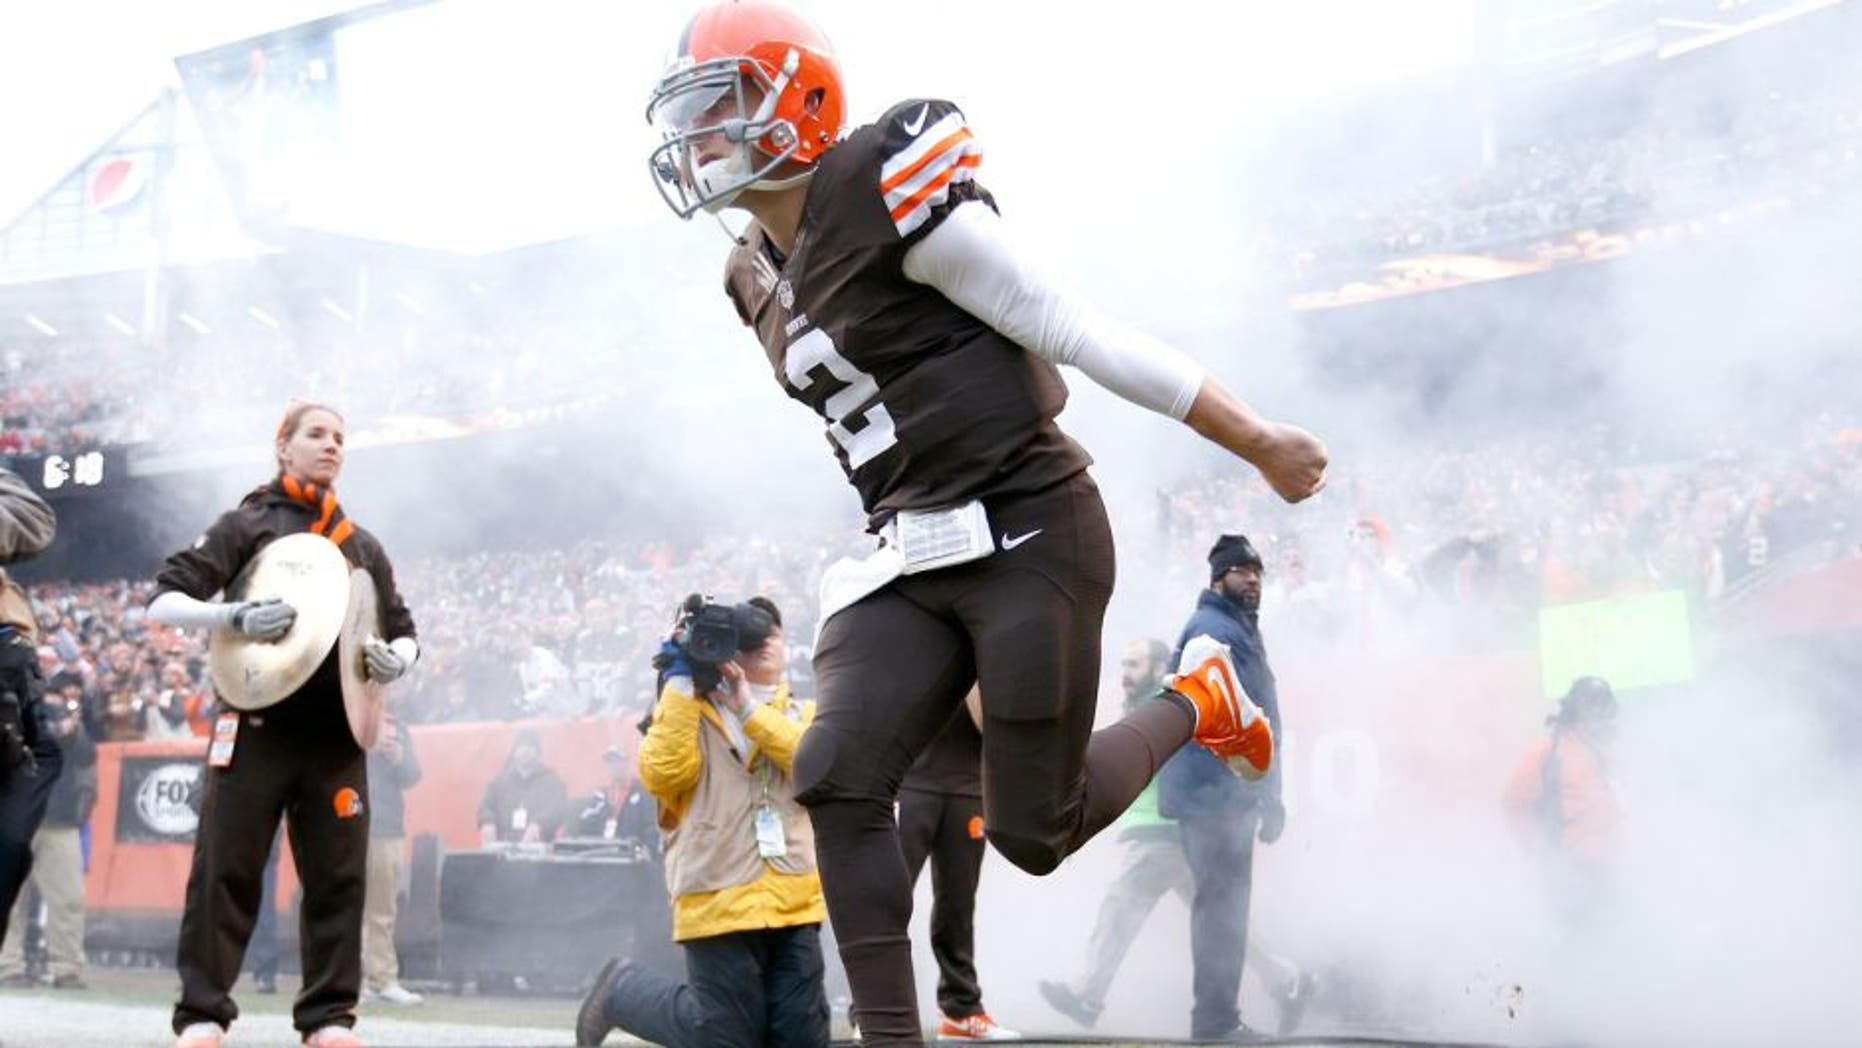 CLEVELAND, OH - DECEMBER 14: Johnny Manziel #2 of the Cleveland Browns runs onto the field during player introductions before the game against the Cincinnati Bengals at FirstEnergy Stadium on December 14, 2014 in Cleveland, Ohio. The Bengals defeated the Browns 30-0. (Photo by Joe Robbins/Getty Images)